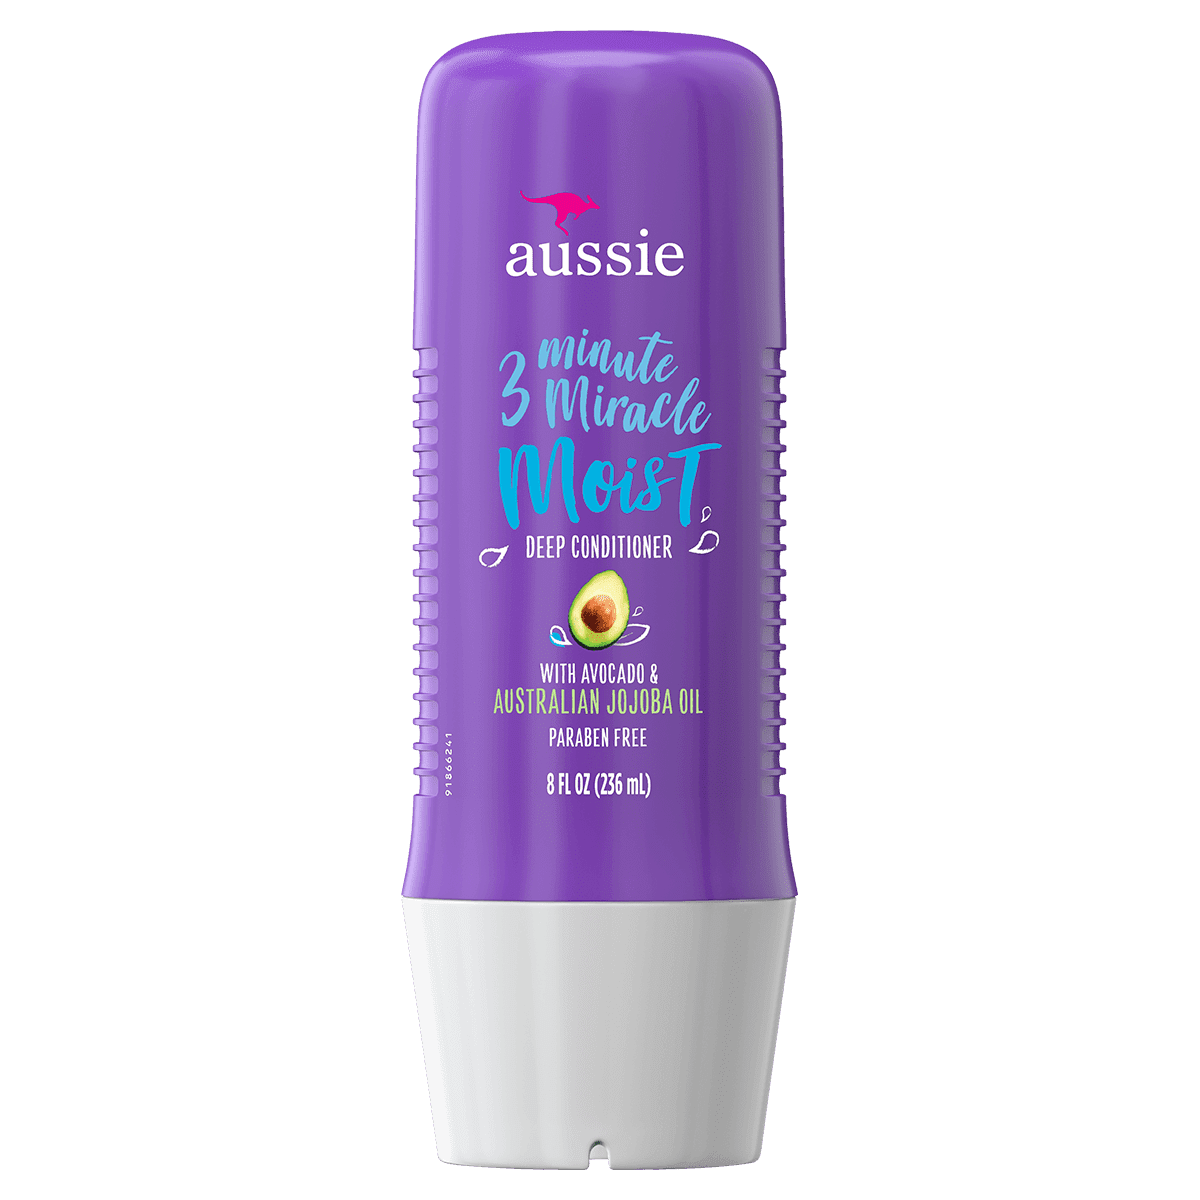 Aussie 3 Minute Miracle Moist